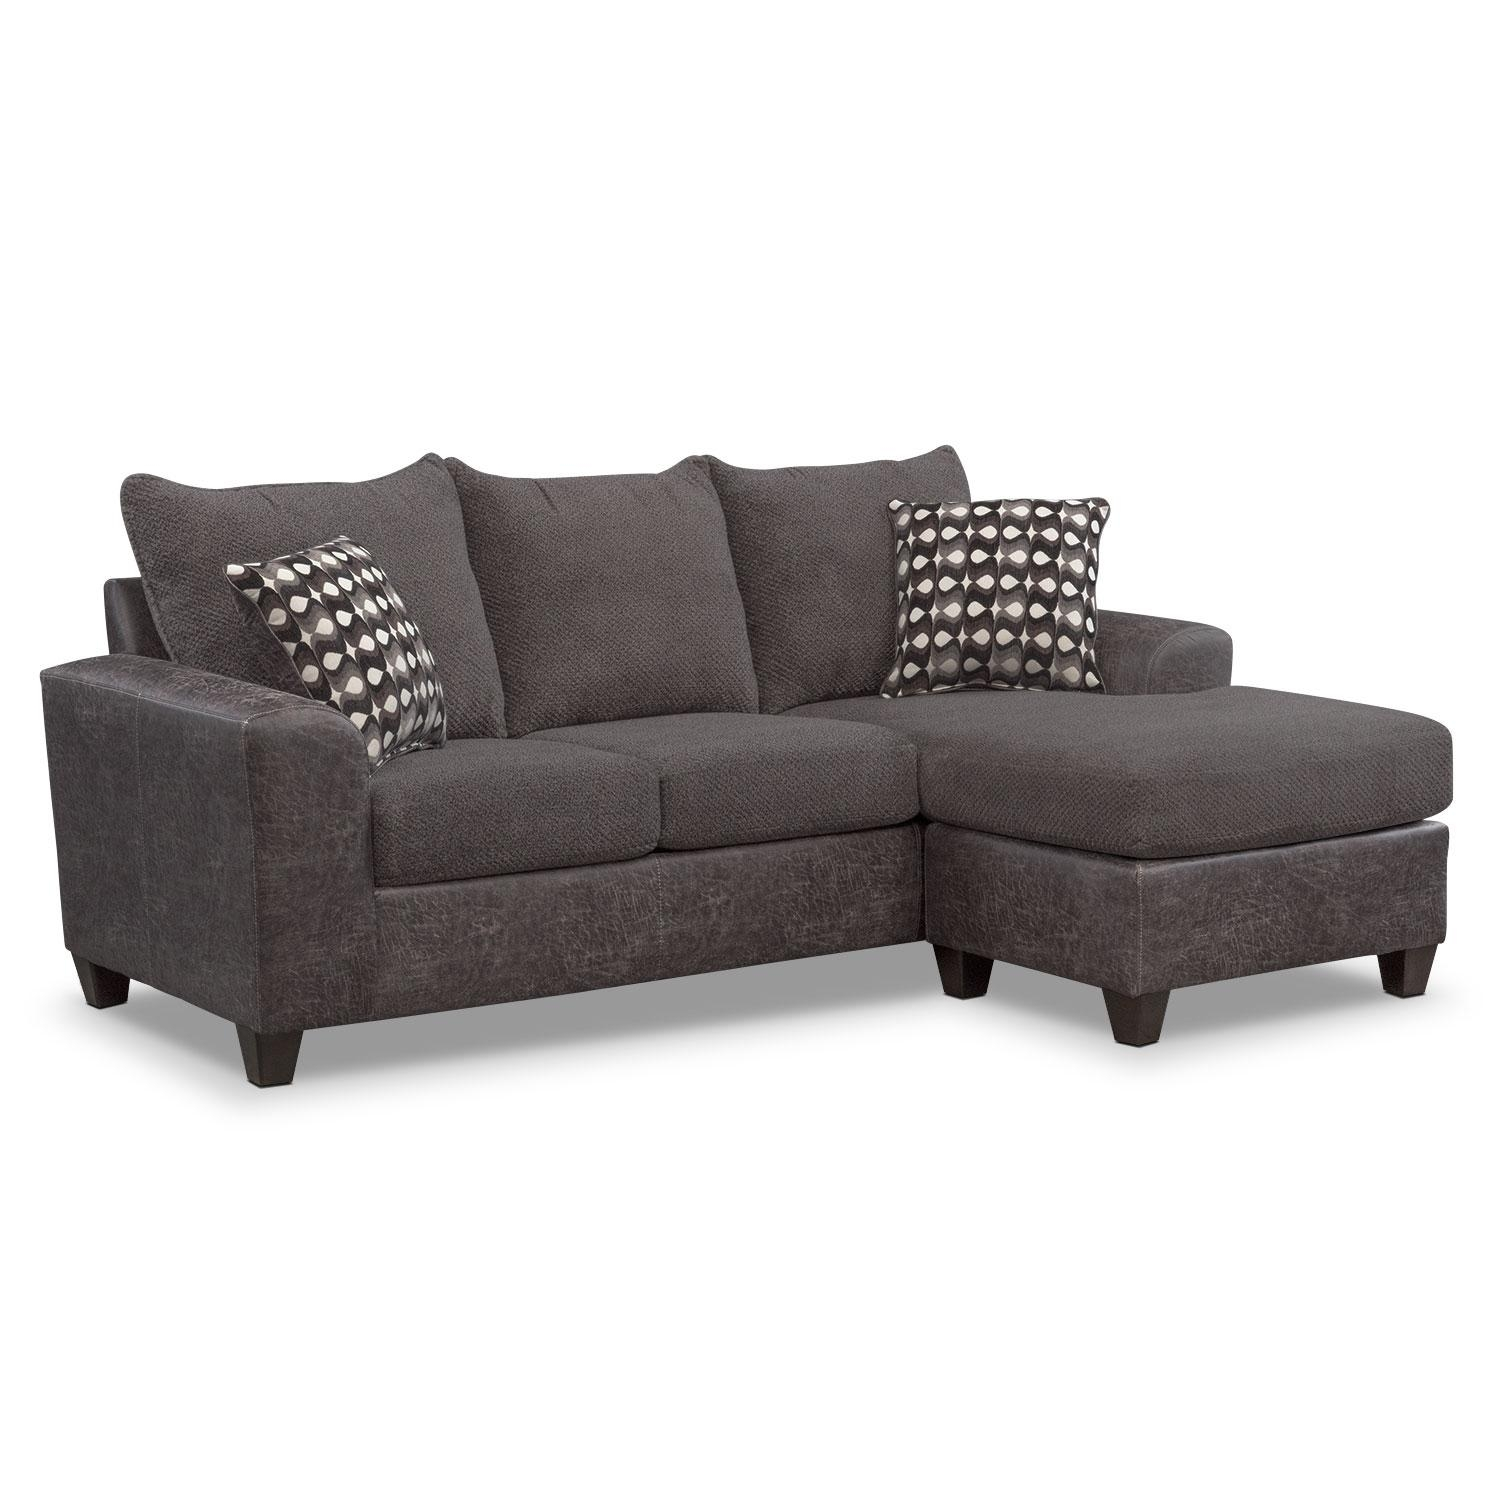 Sofas & Couches | Living Room Seating | Value City Furniture Throughout Overstuffed Sofas And Chairs (View 9 of 20)